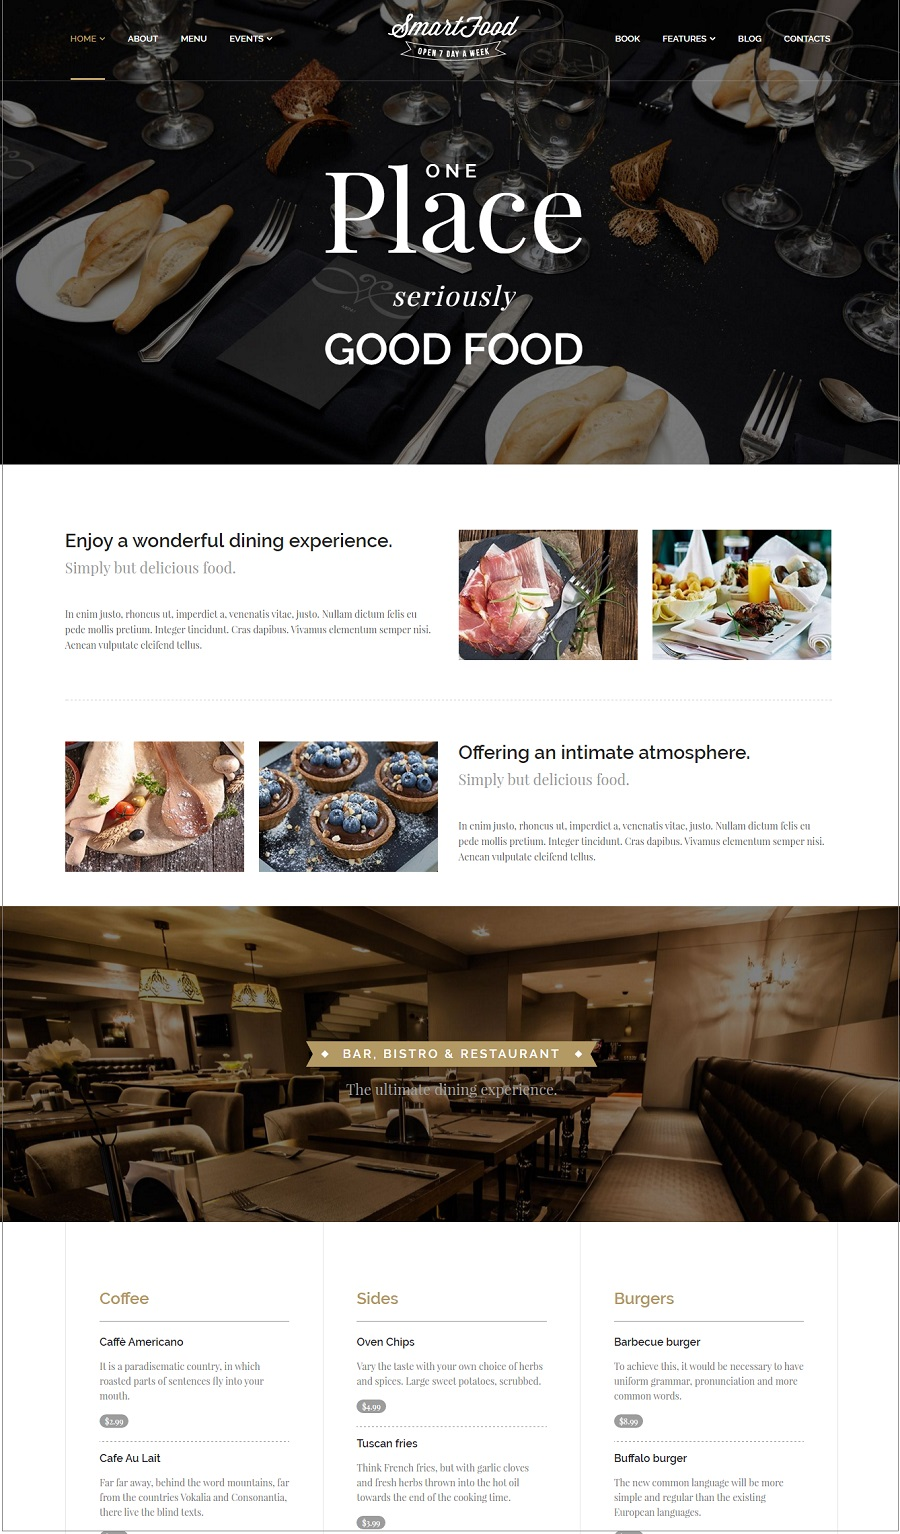 smartfood restuarant wordpress theme